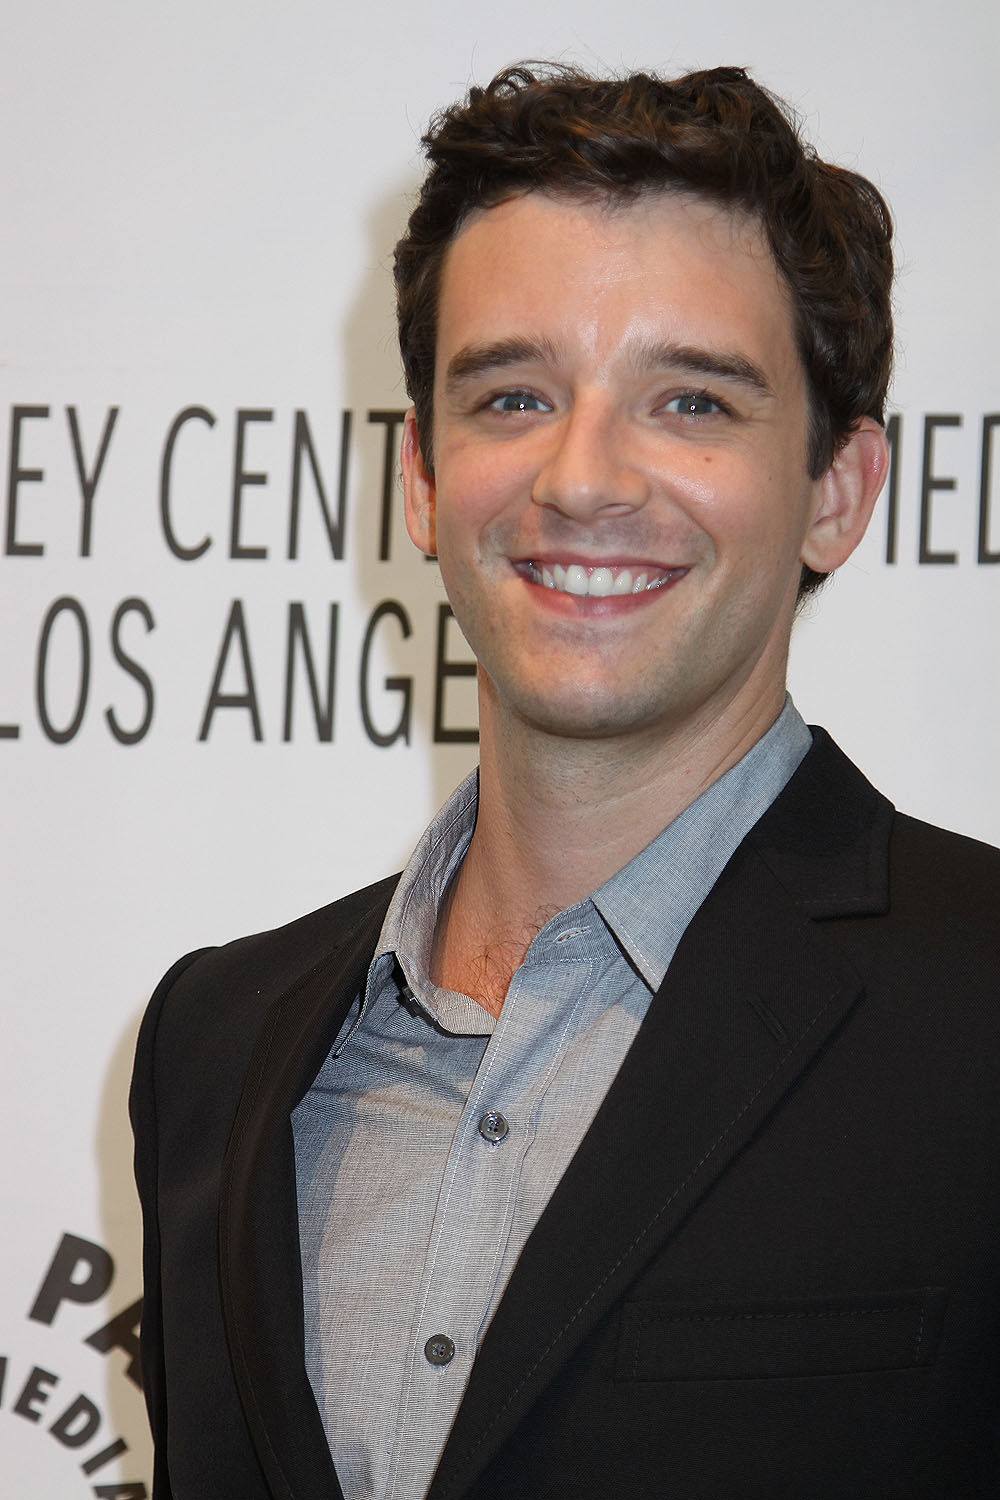 Michael Urie partners